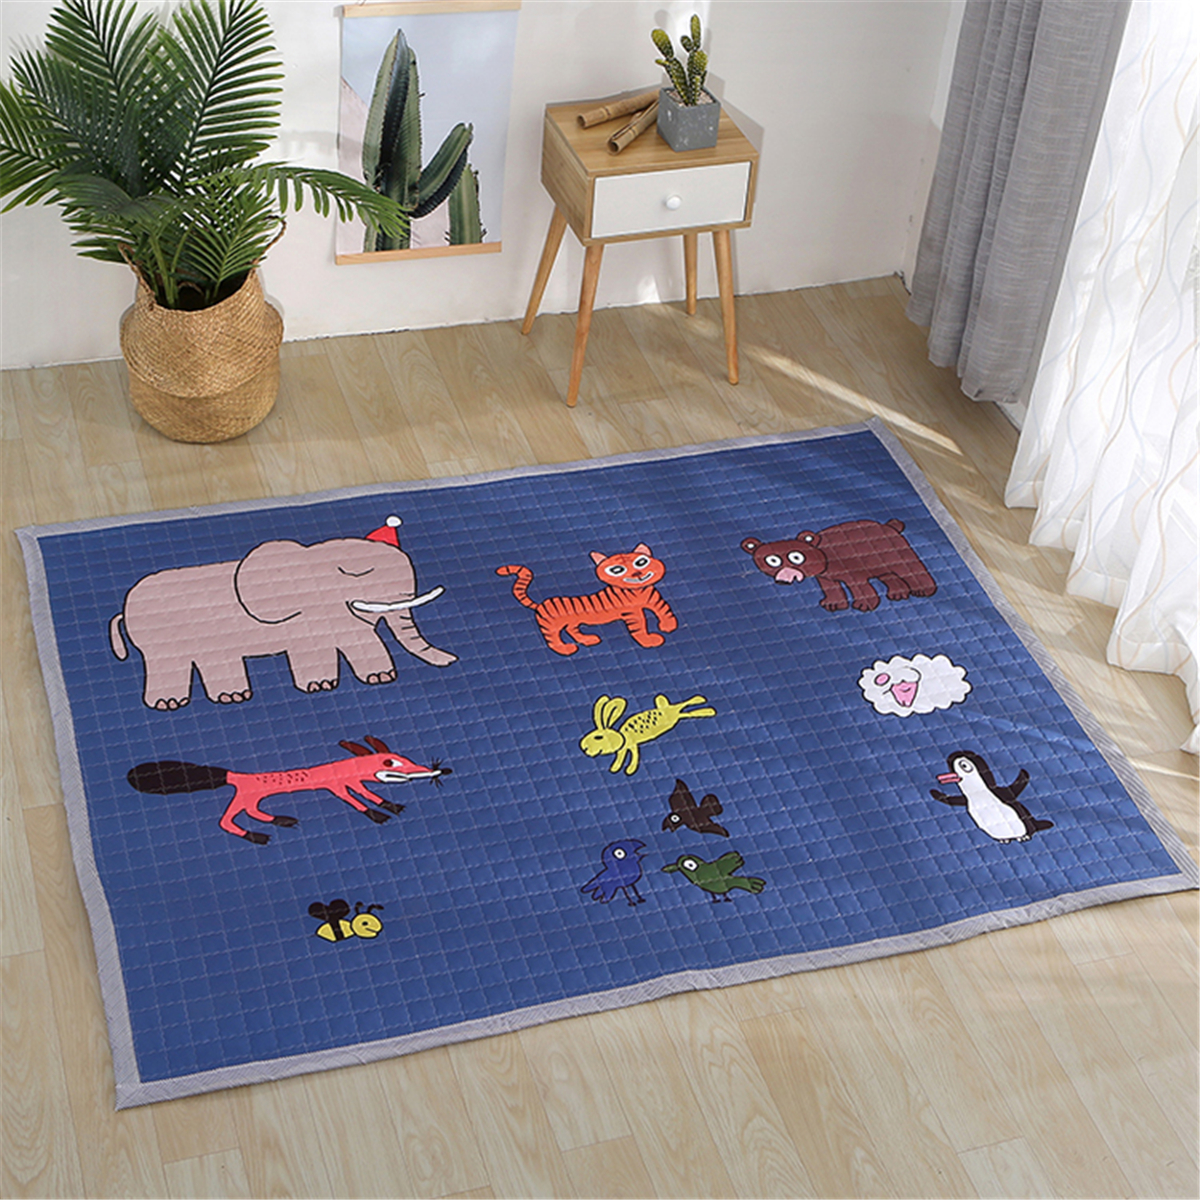 Polyester Baby Play Mat Crawling Kids Game Gym Activity Carpet Blanket Floor Rug